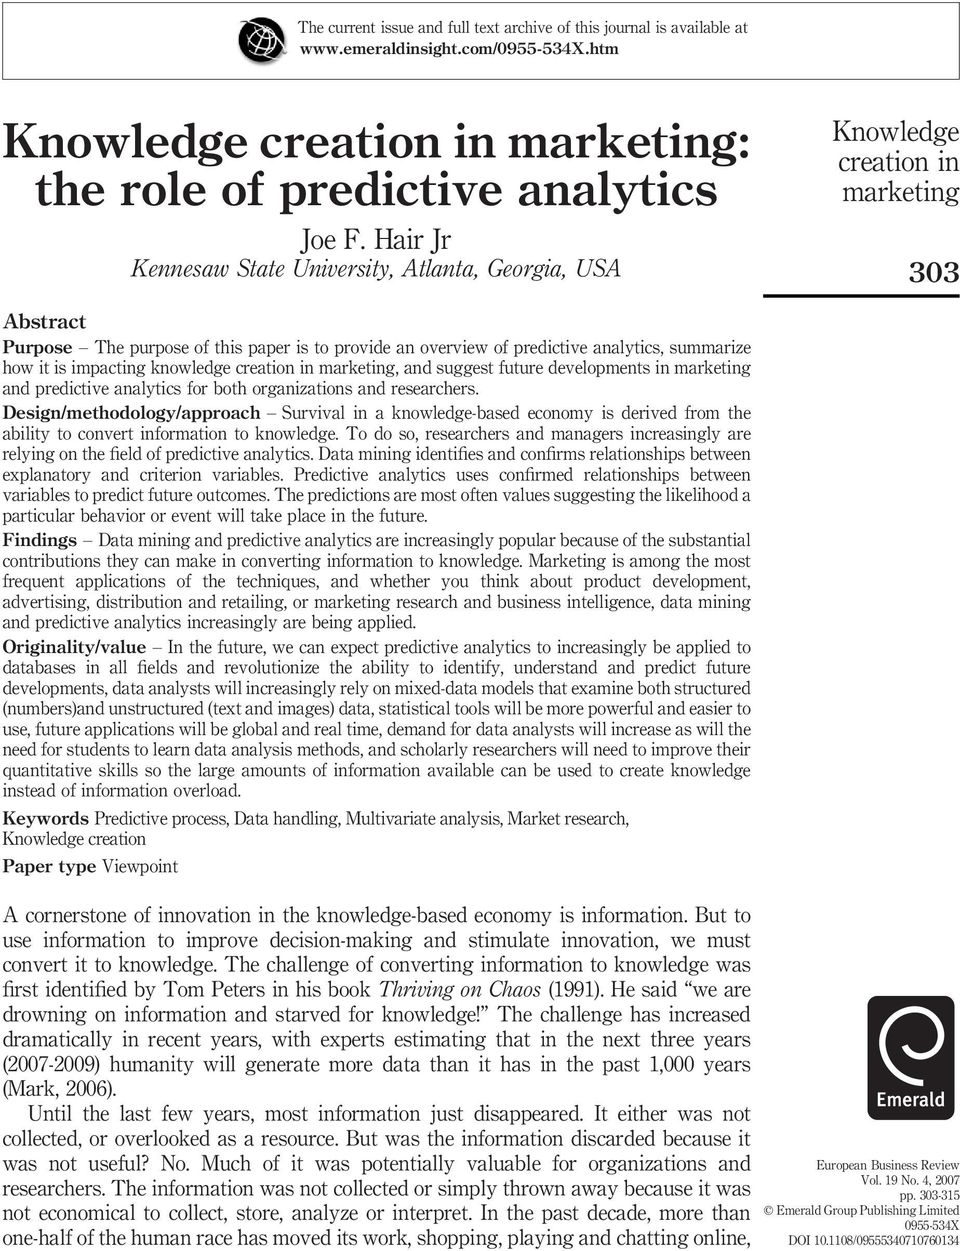 suggest future developments in and predictive analytics for both organizations and researchers.